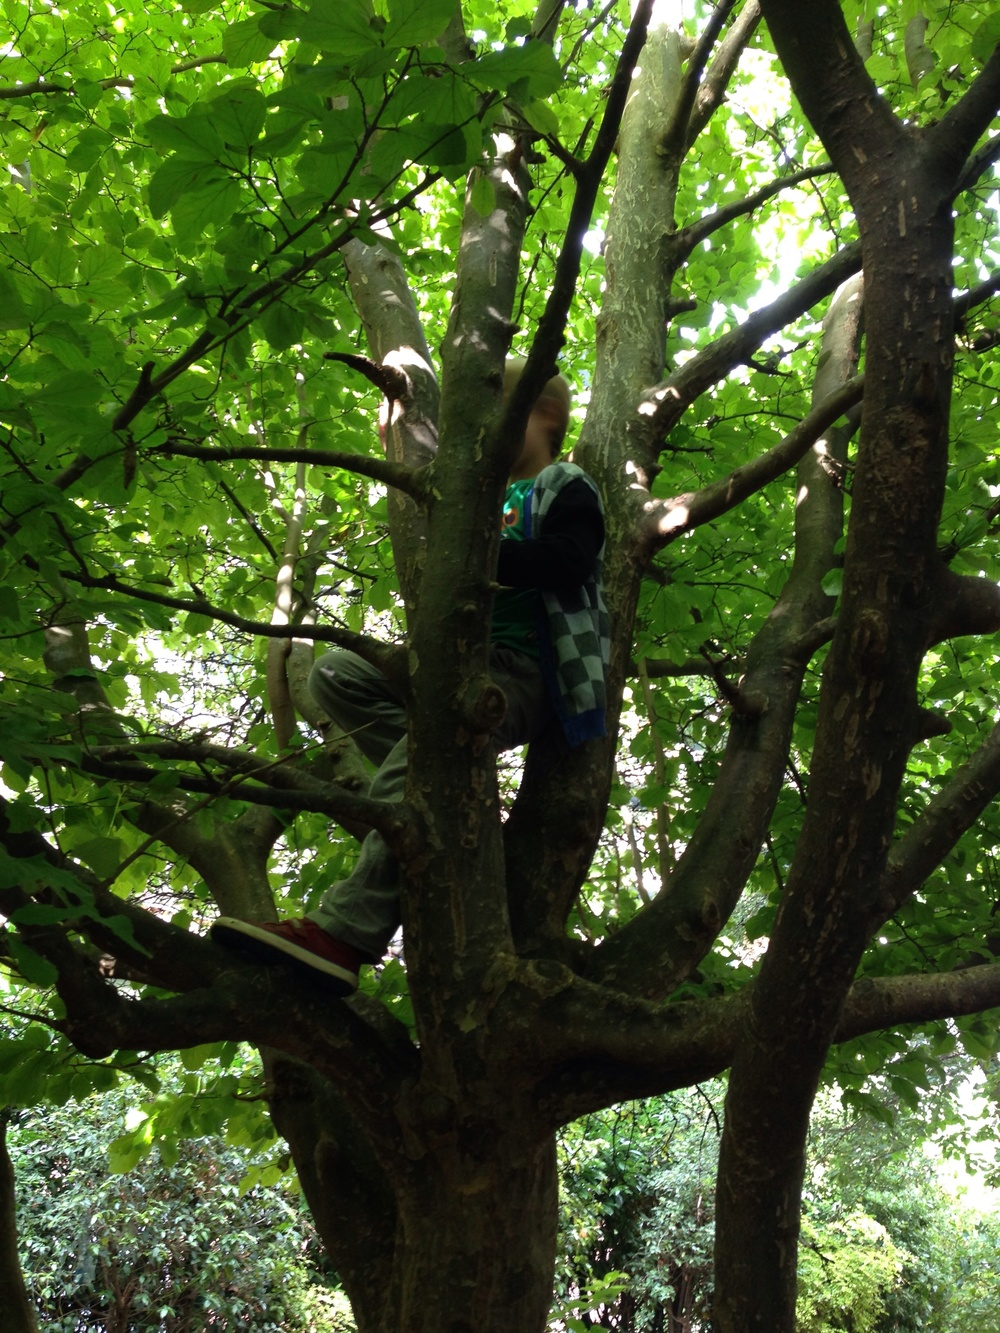 Quinn in a tree. Summer is over but childhood goes on.